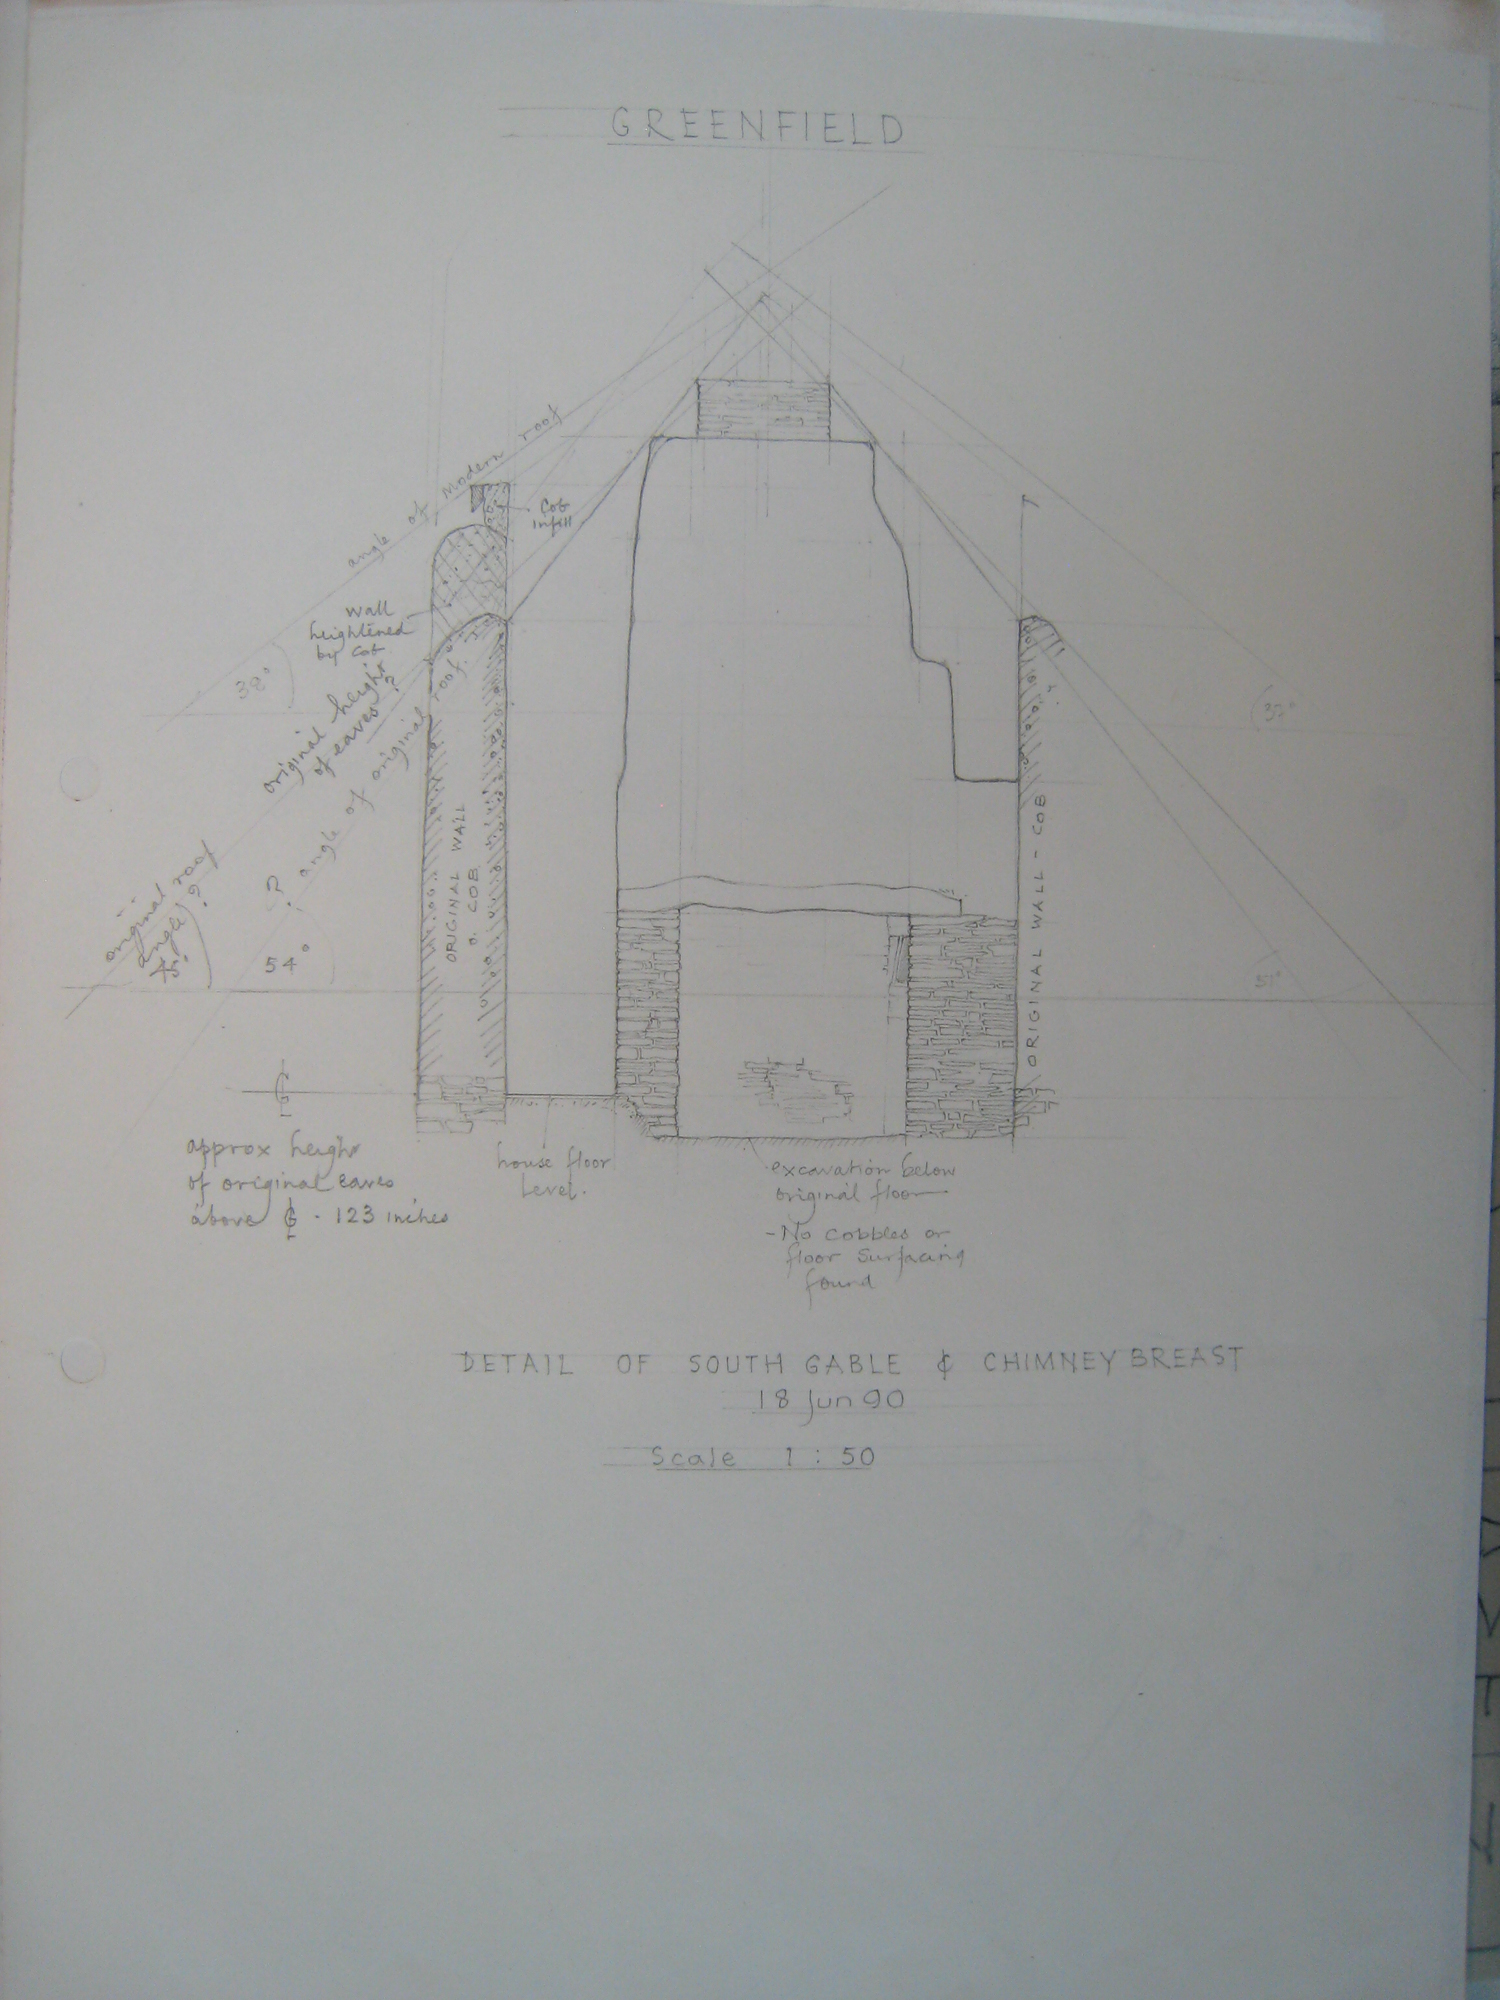 Eworthy: Greenfield Cottage south gable and chimney breast, drawing